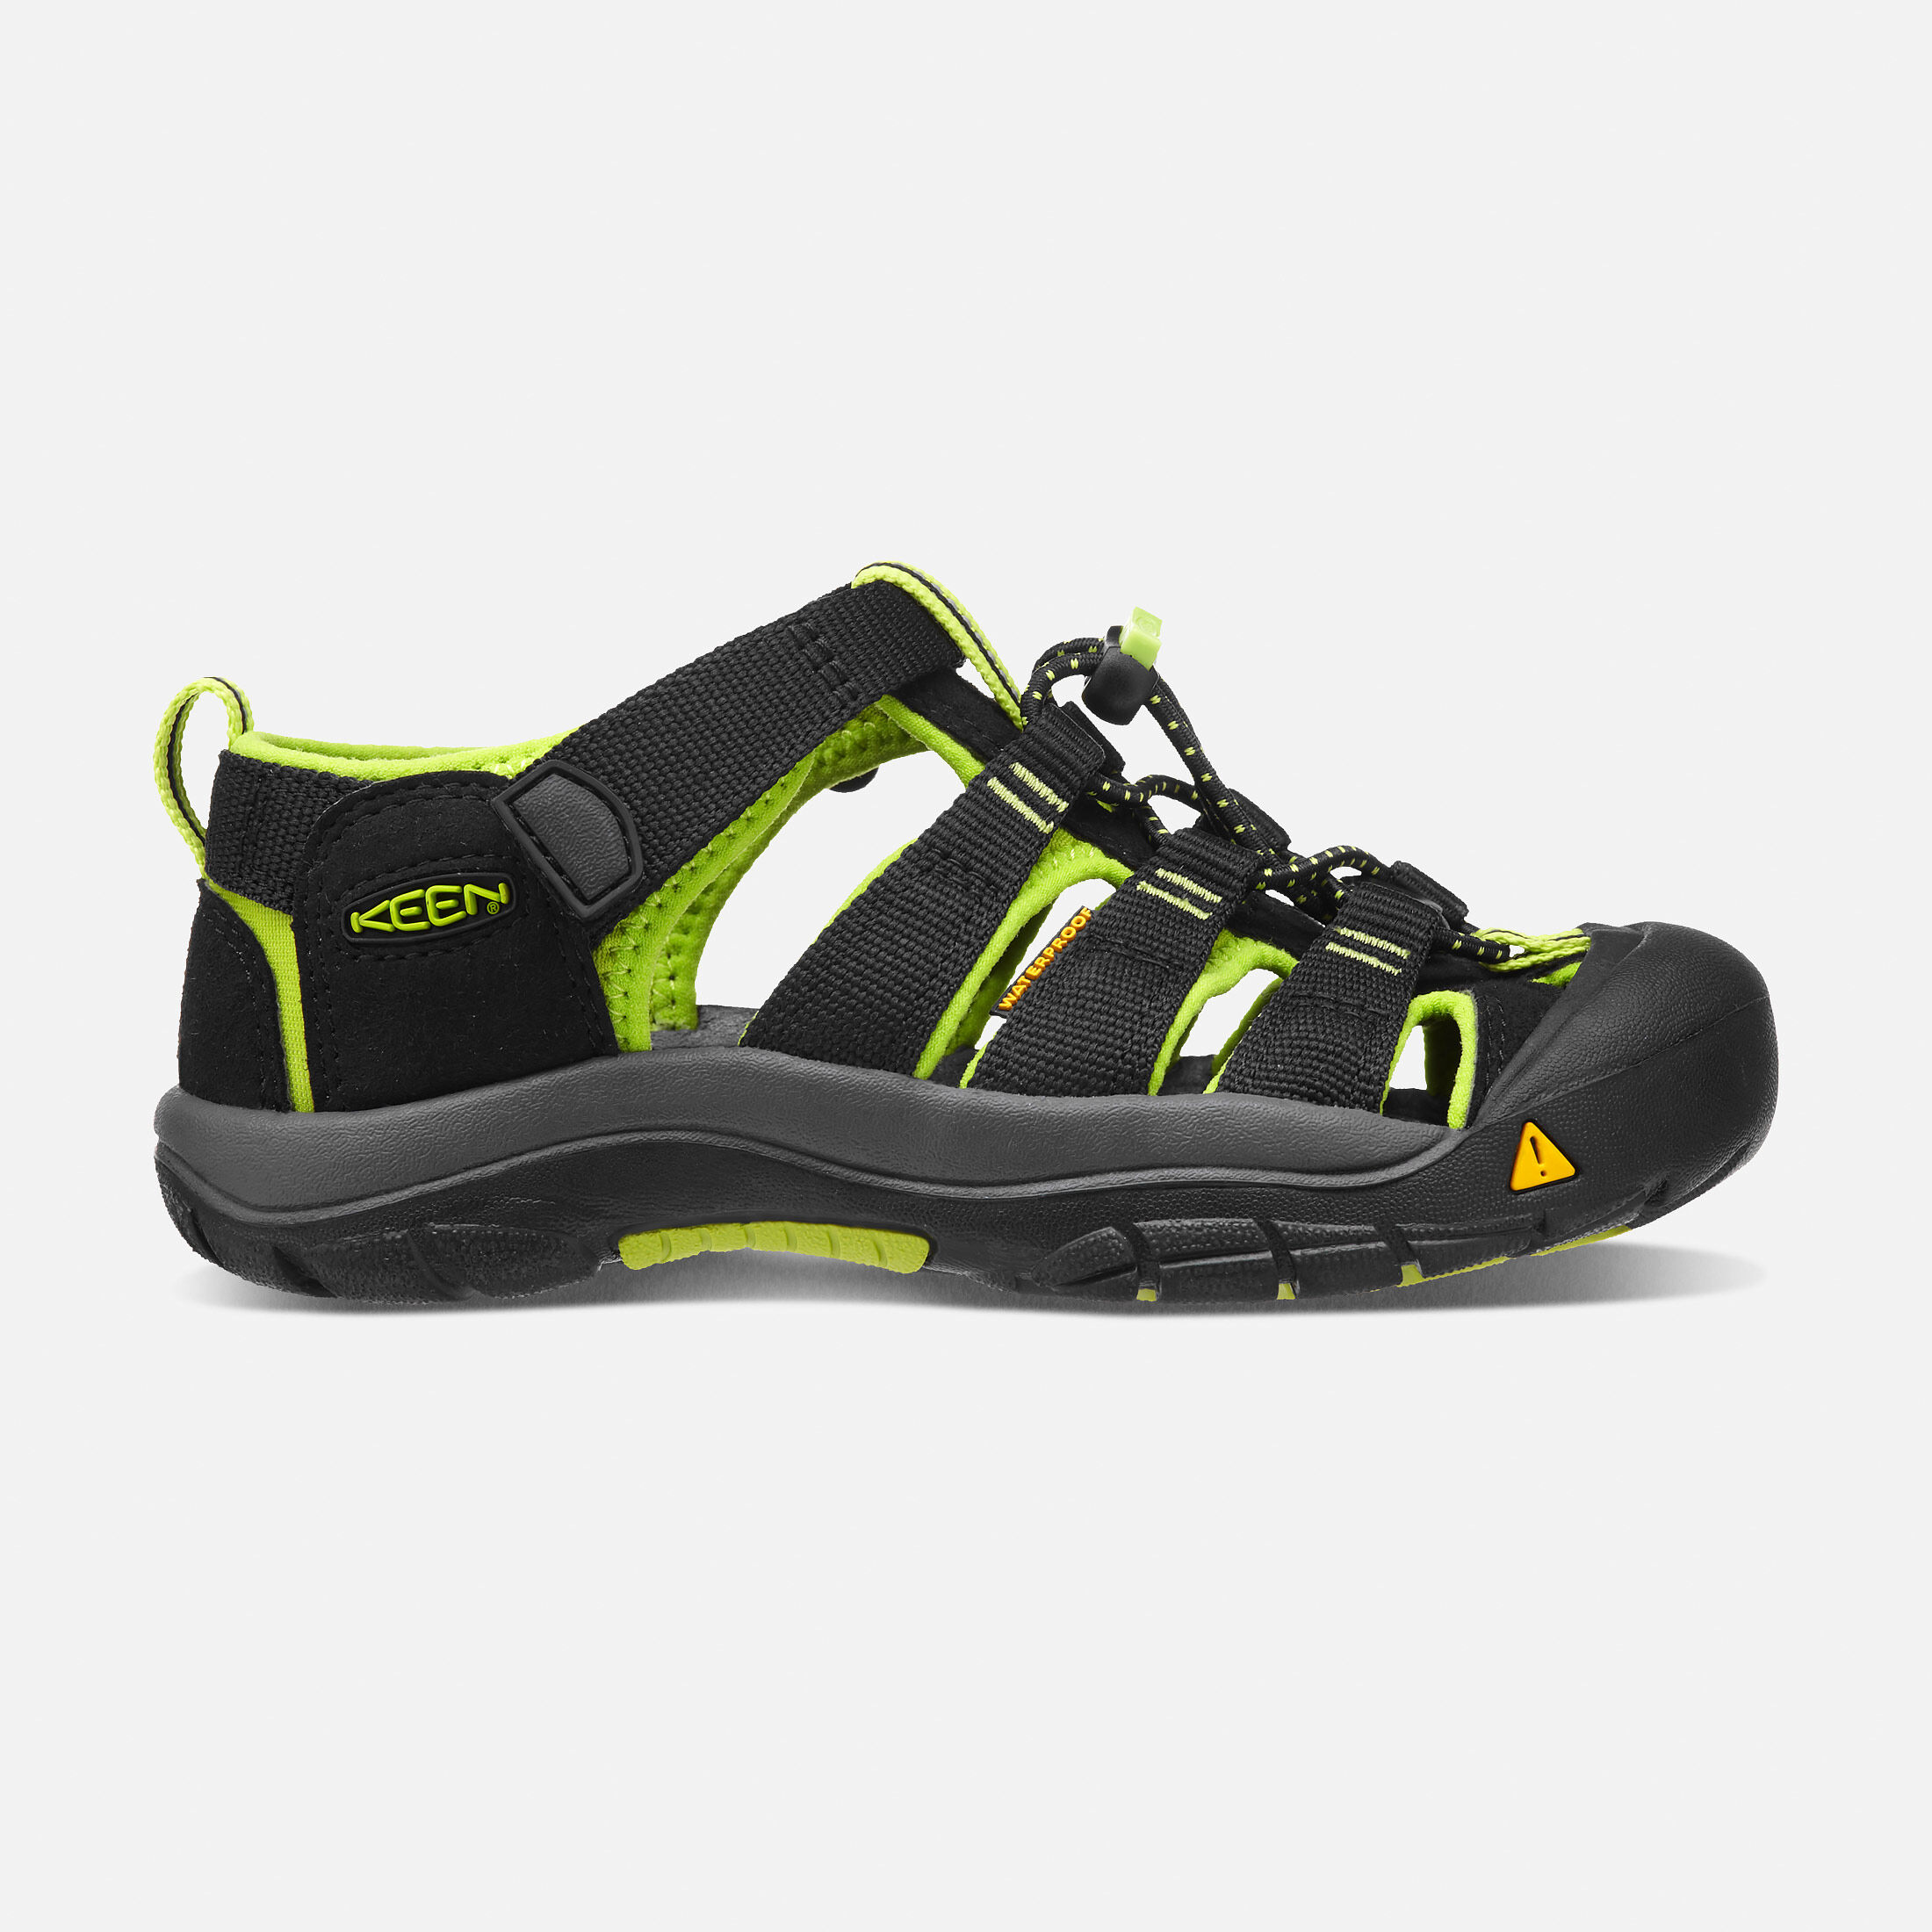 Kids' Water Shoes \u0026 Sandals for Boys